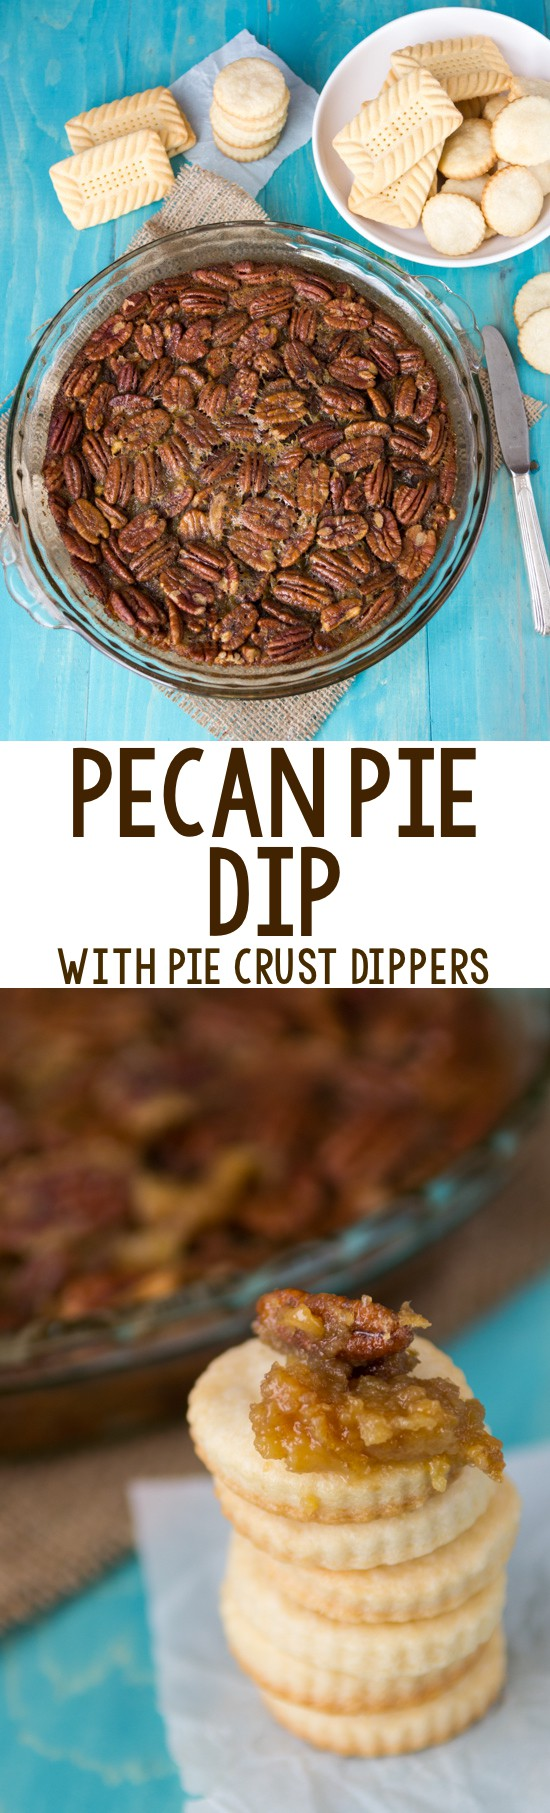 My favorite dip - a hot Pecan Pie Dip! It's a pecan pie recipe without the crust. Serve the crust or cookies for dippers for the perfect party appetizer.